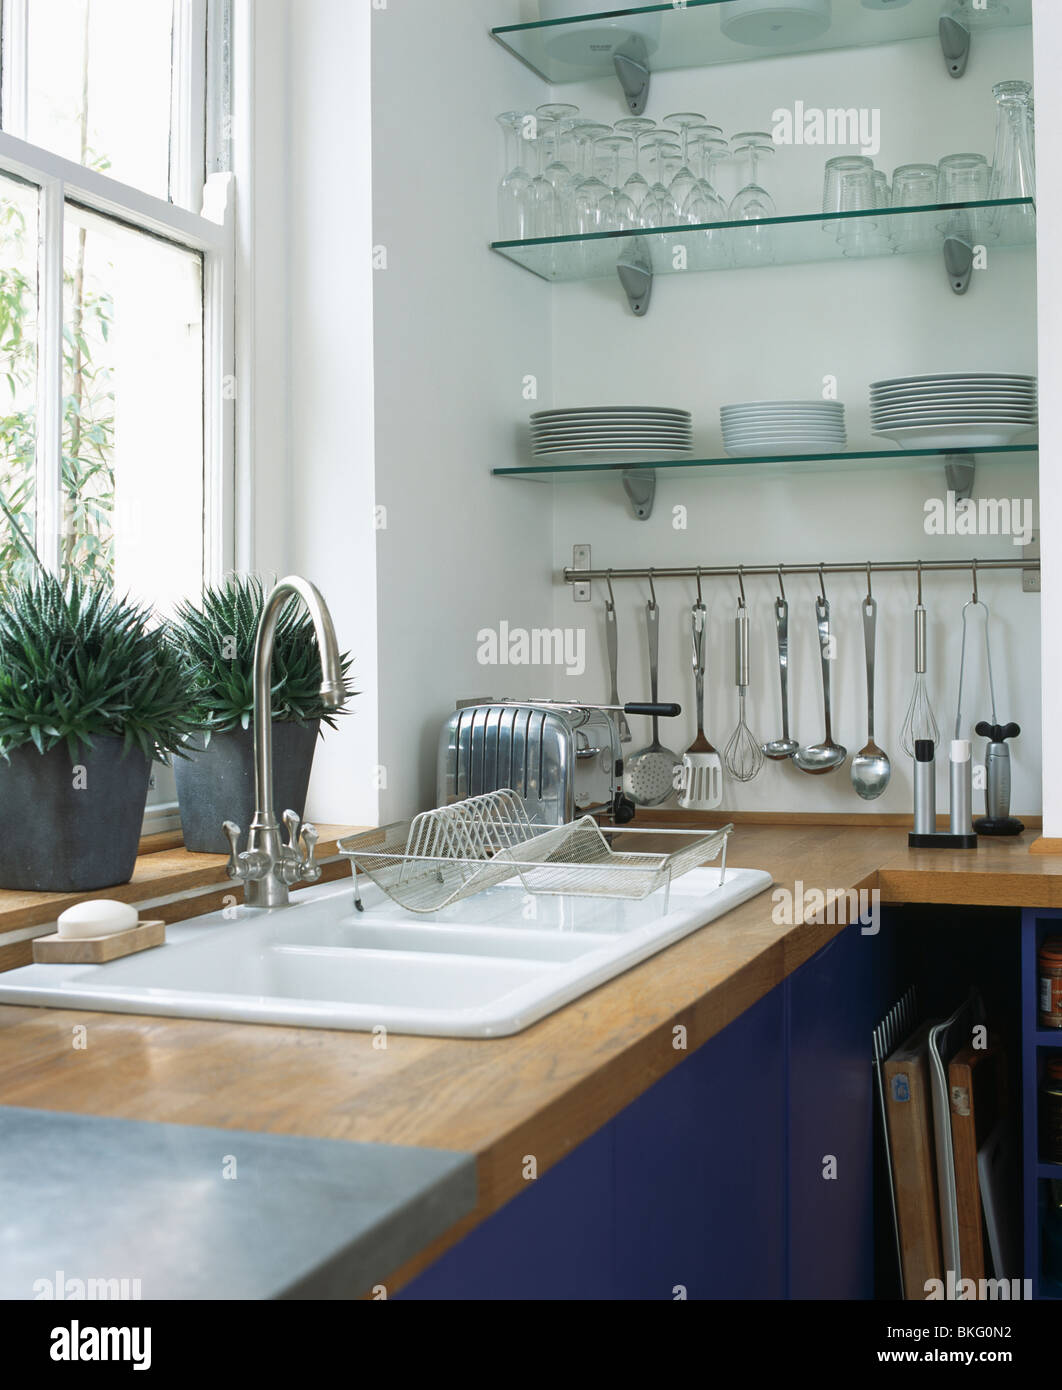 Glass kitchen utensils - Double White Sink Below Window In Modern Kitchen With Glass Shelves Above Steel Utensils On Metal Storage Rack